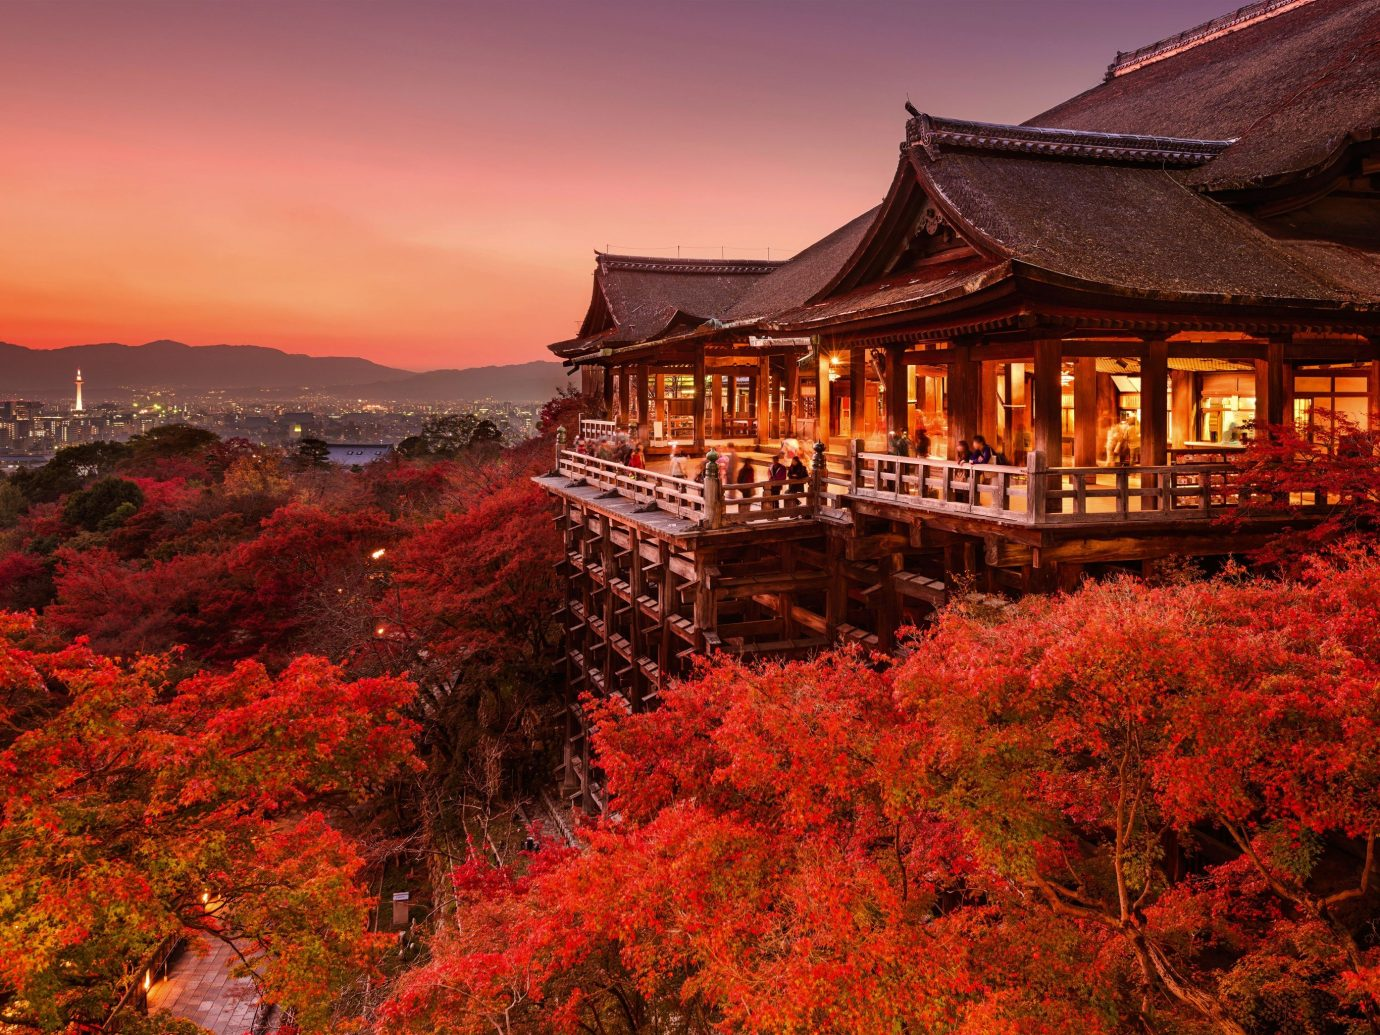 Trip Ideas outdoor sky tree autumn season leaf mountain evening Sunset dusk traveling hillside lush